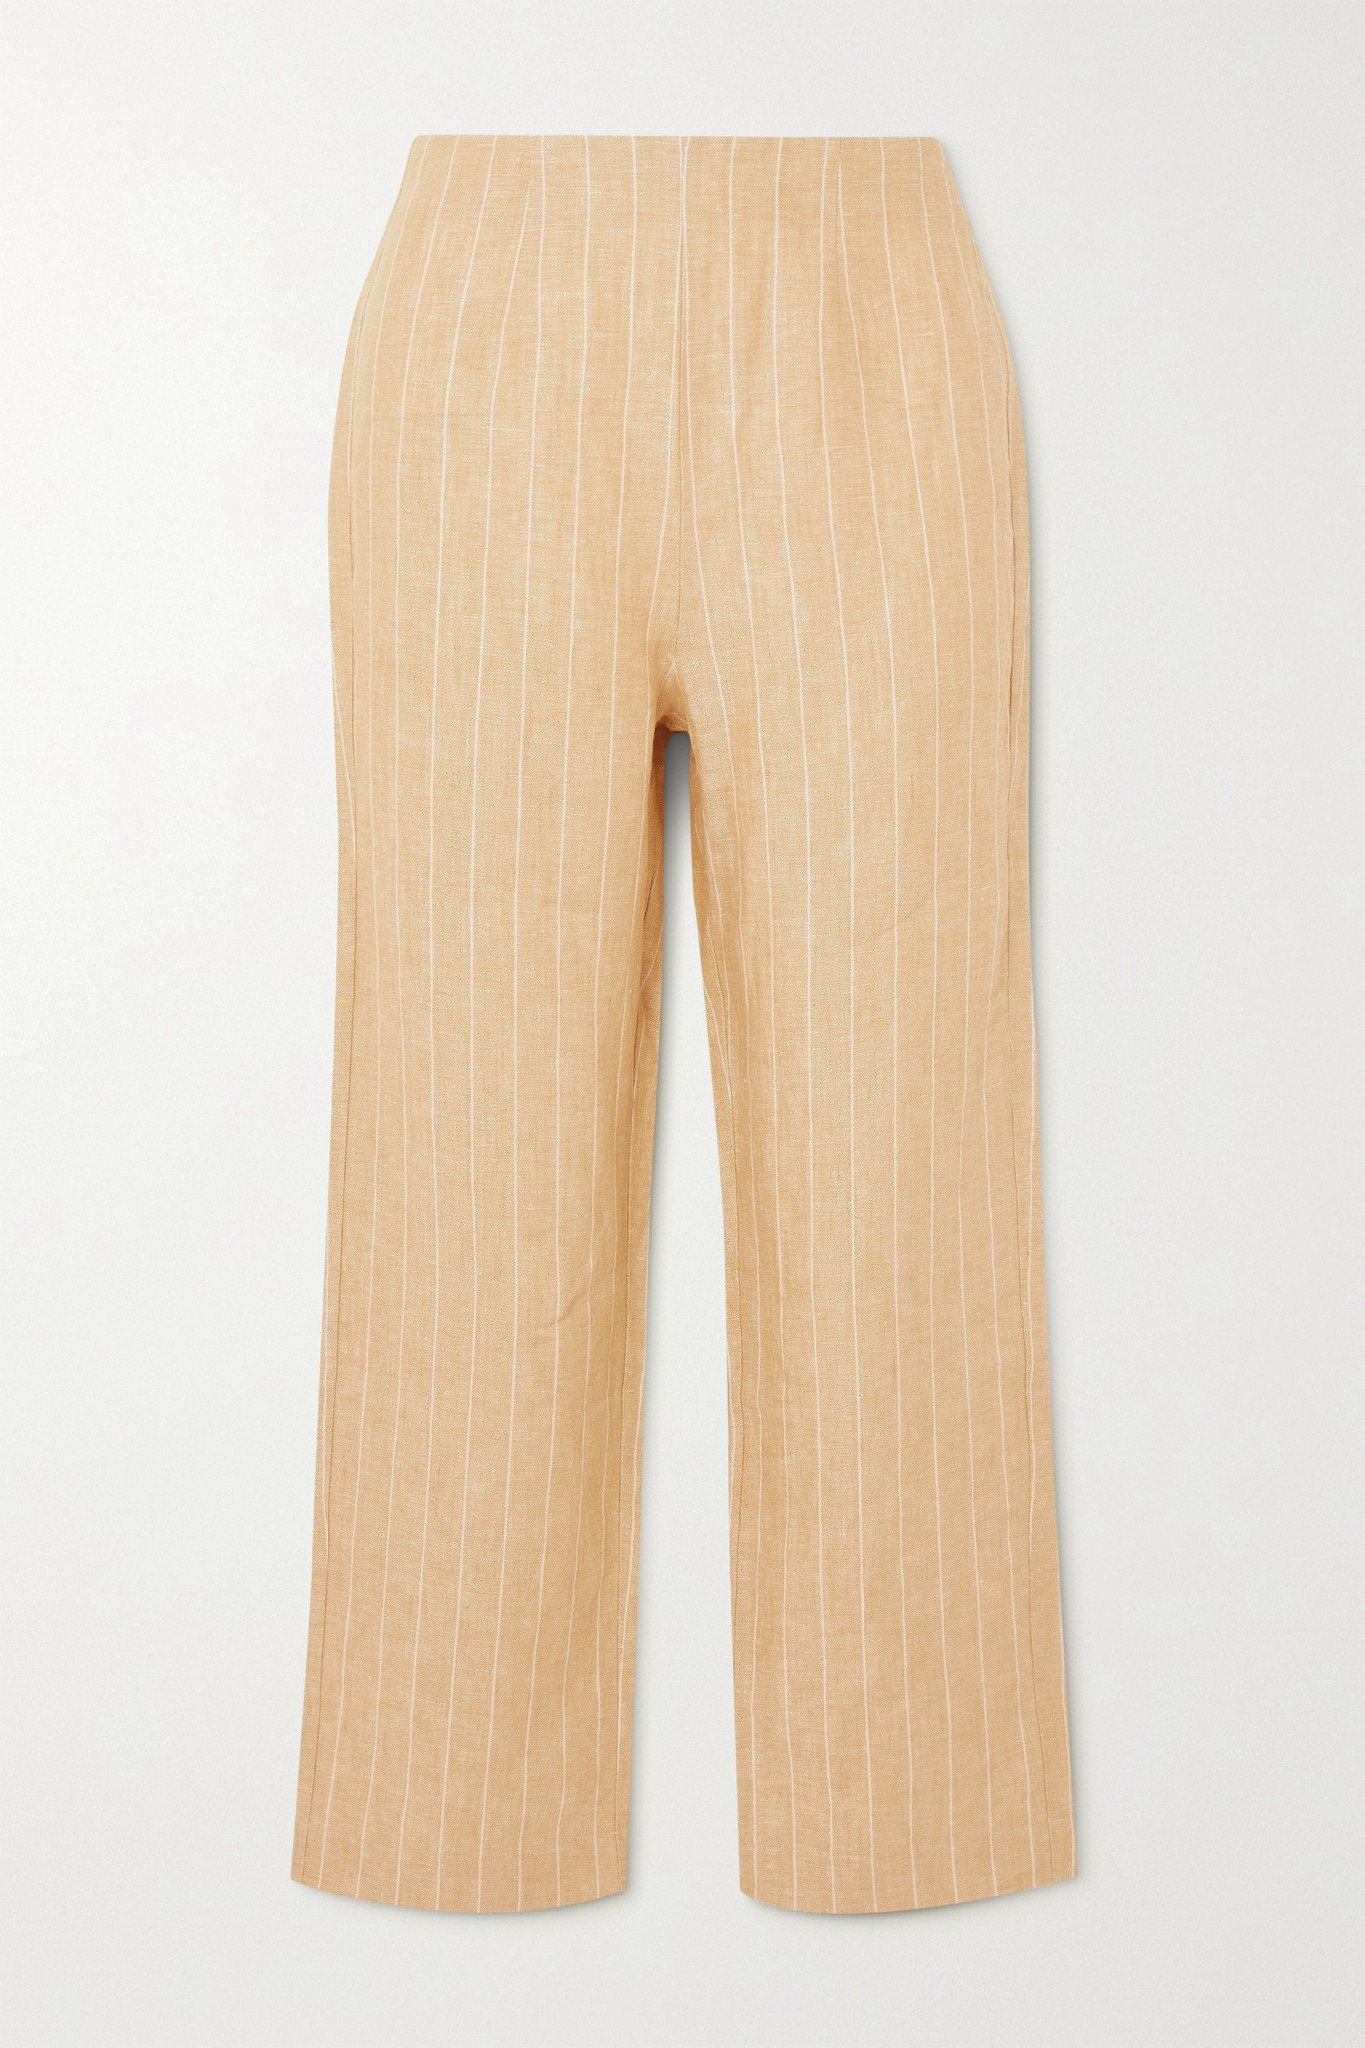 REFORMATION - Justin Cropped Pinstriped Linen Wide-leg Pants - Yellow - US6